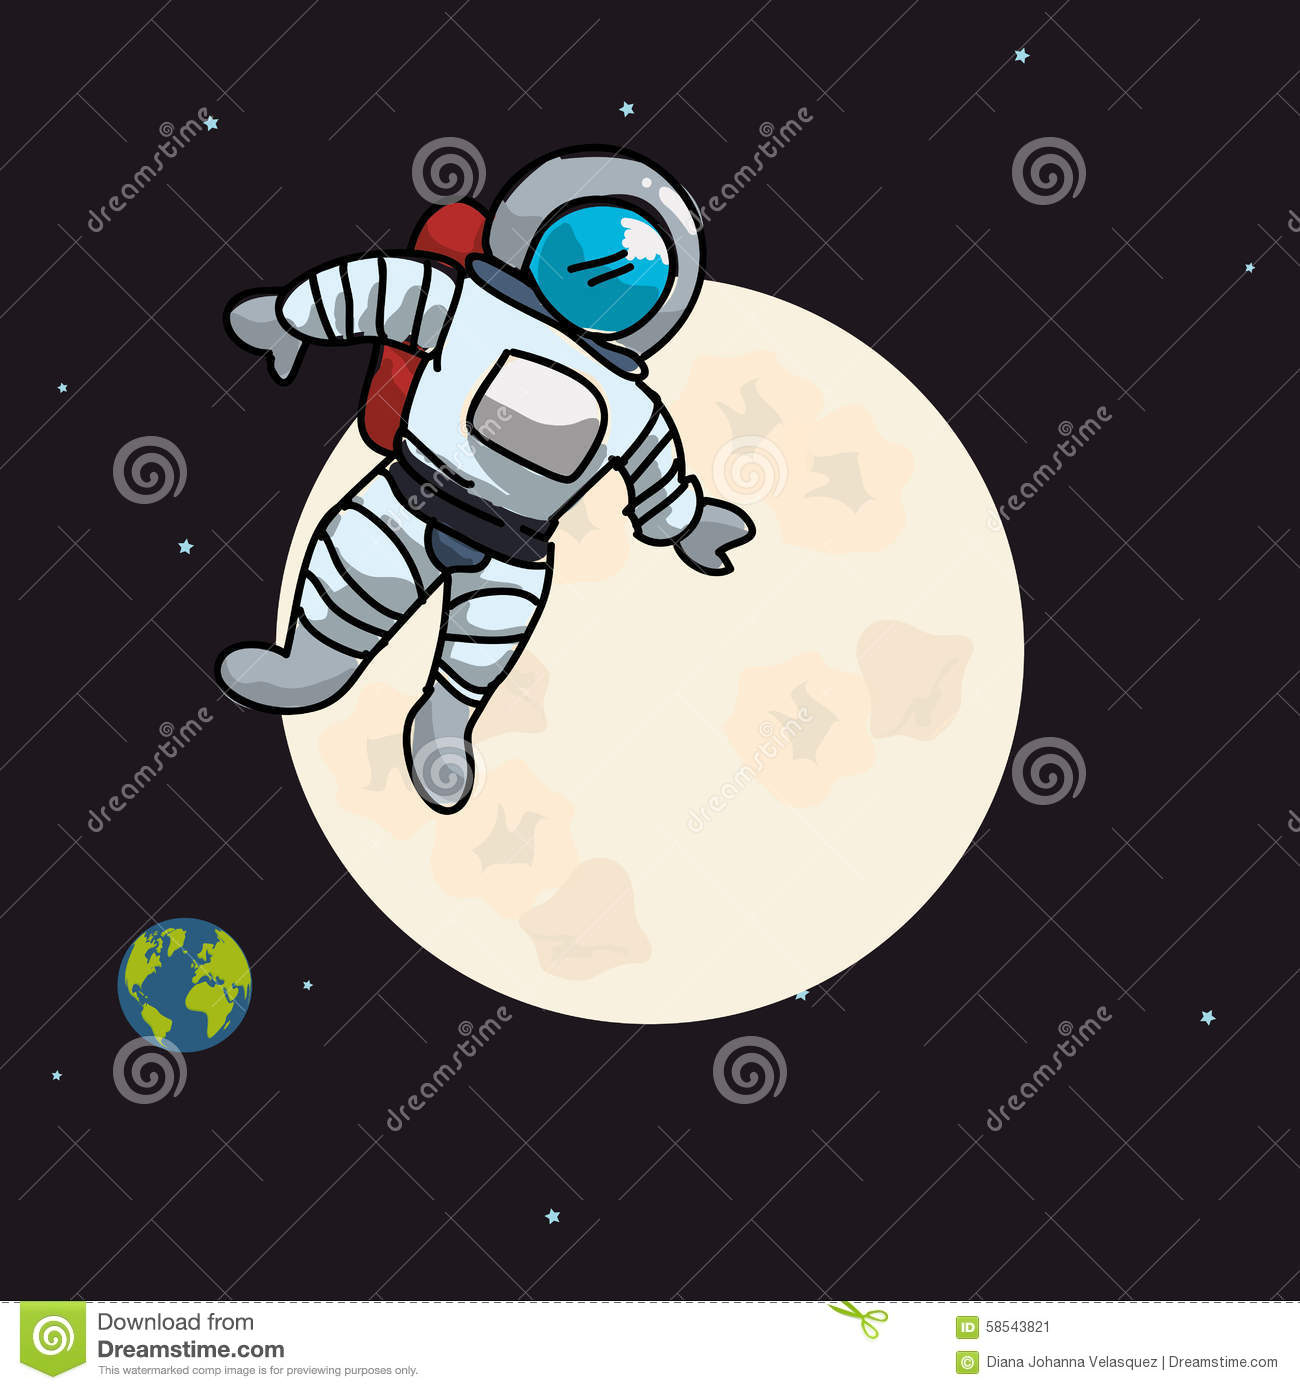 astronaut design - photo #21